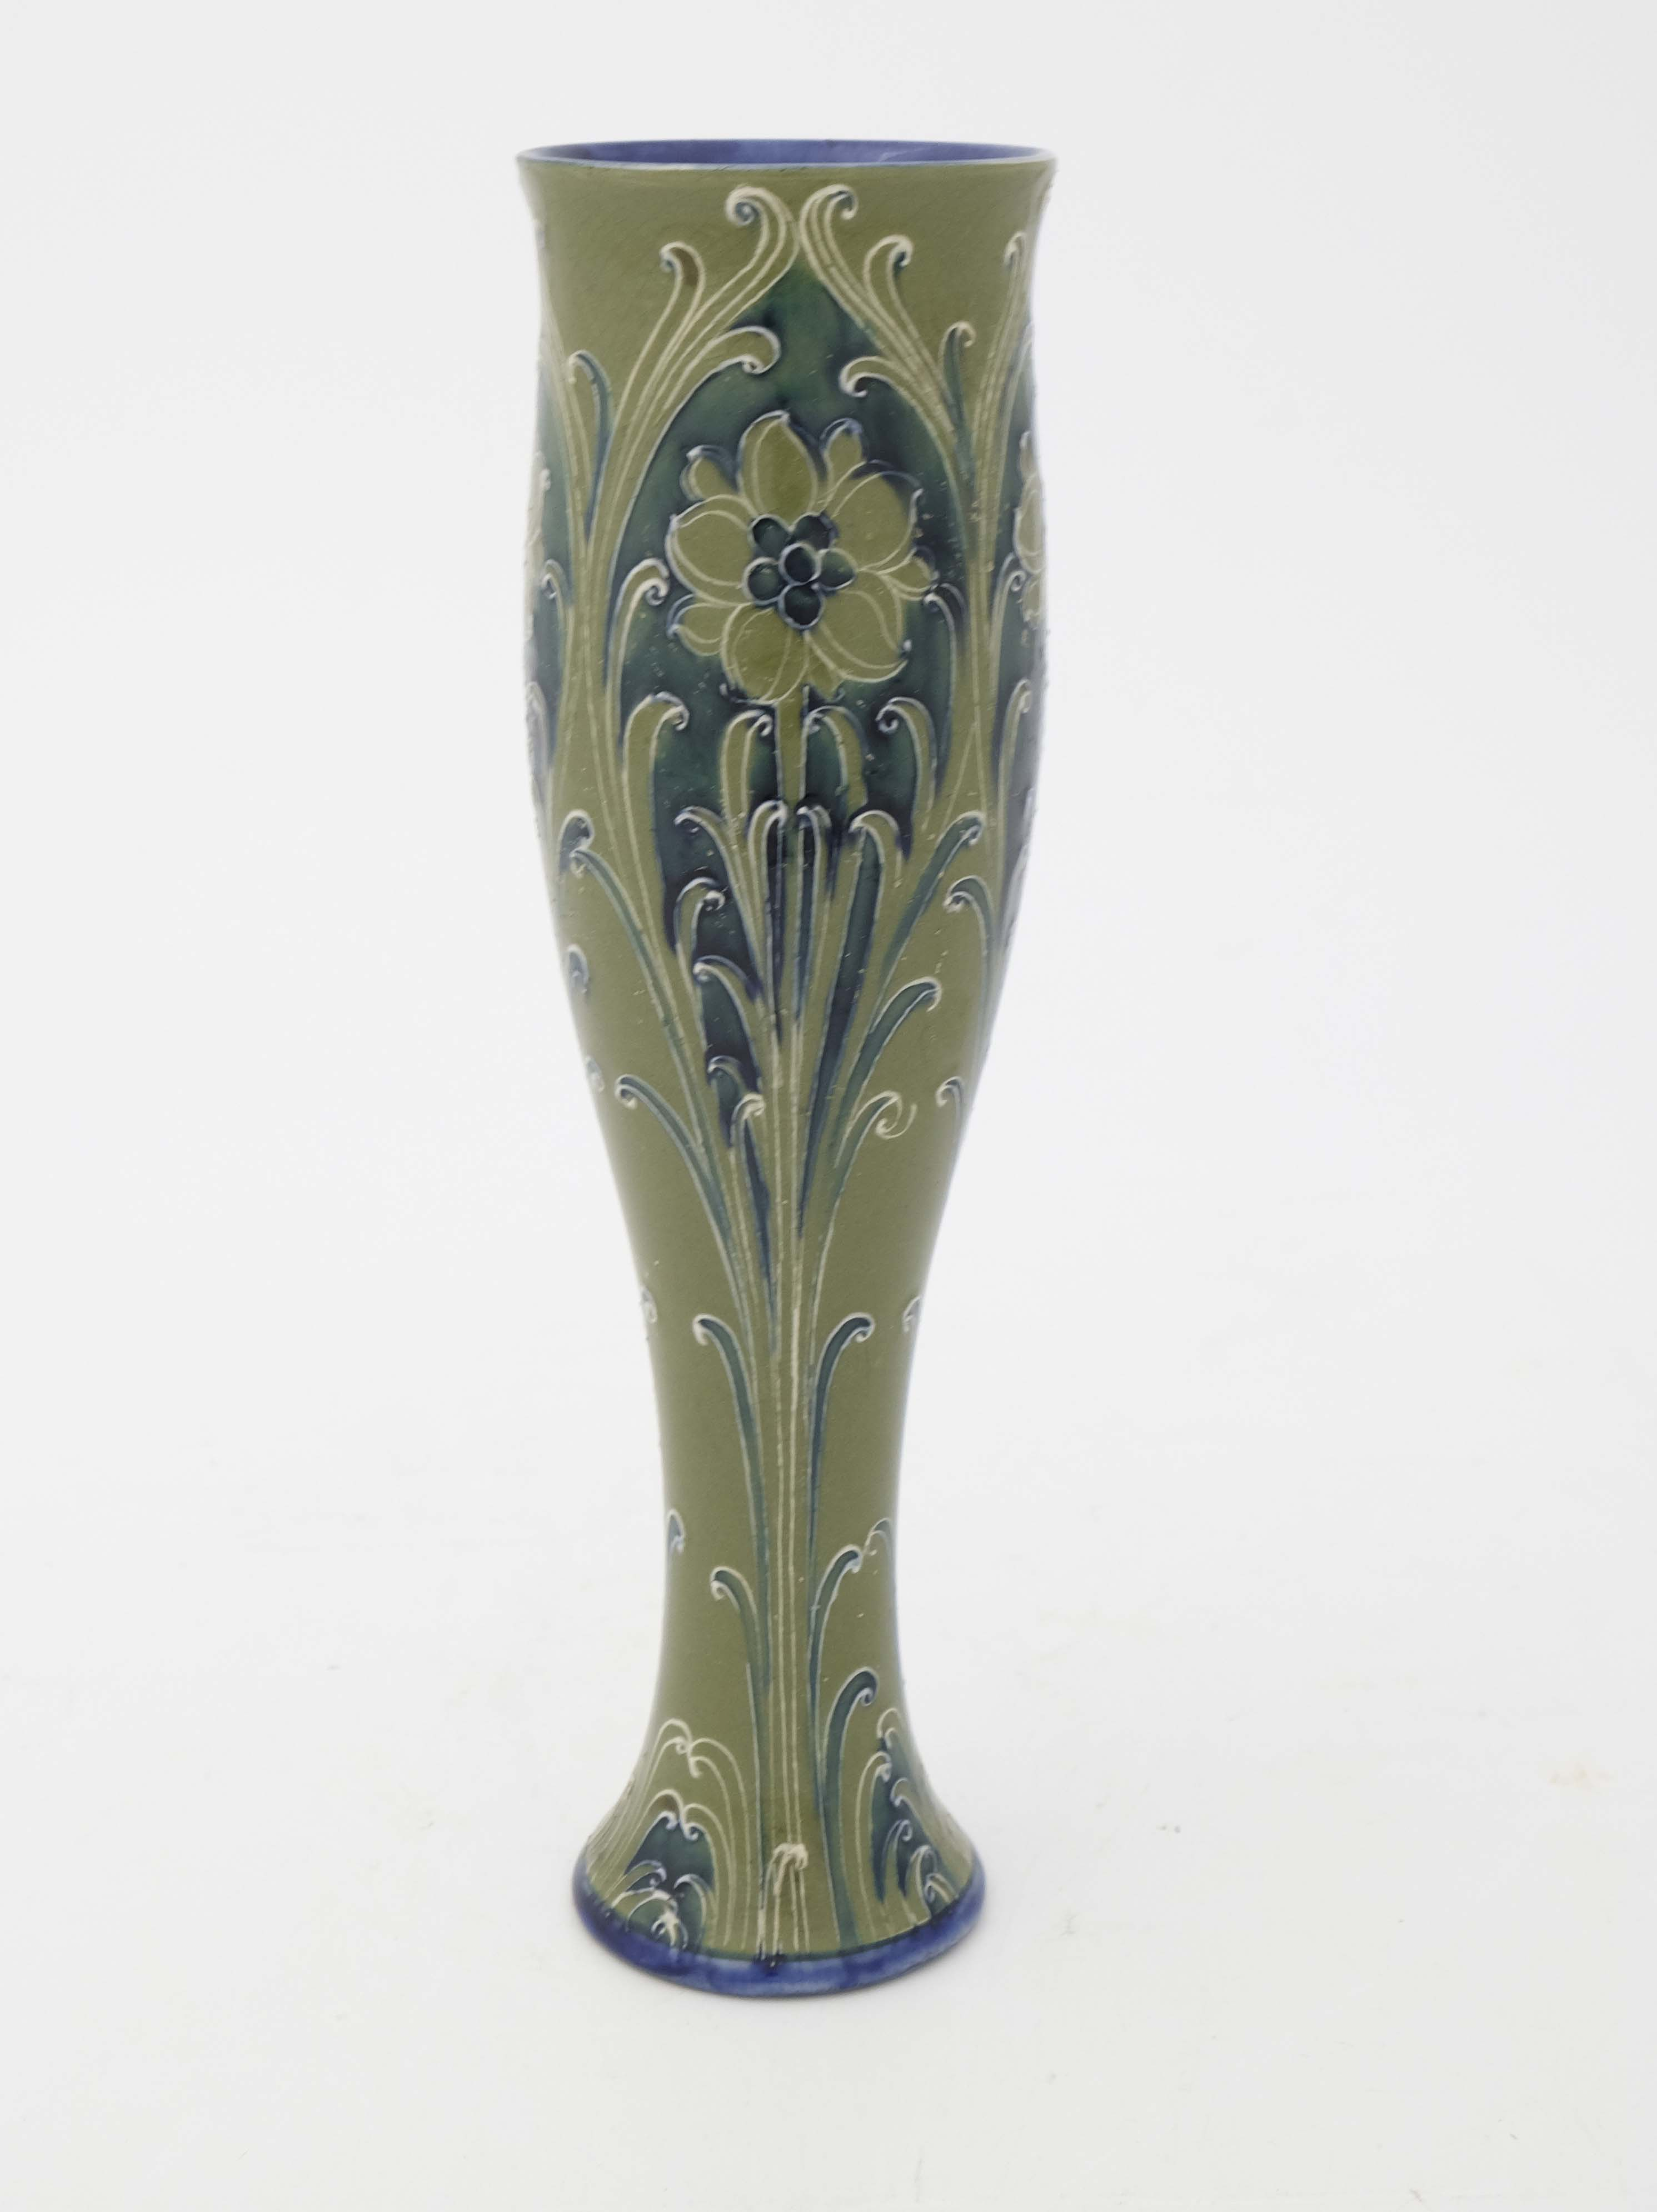 William Moorcroft for James MacIntyre, a Daffodil - Image 3 of 4